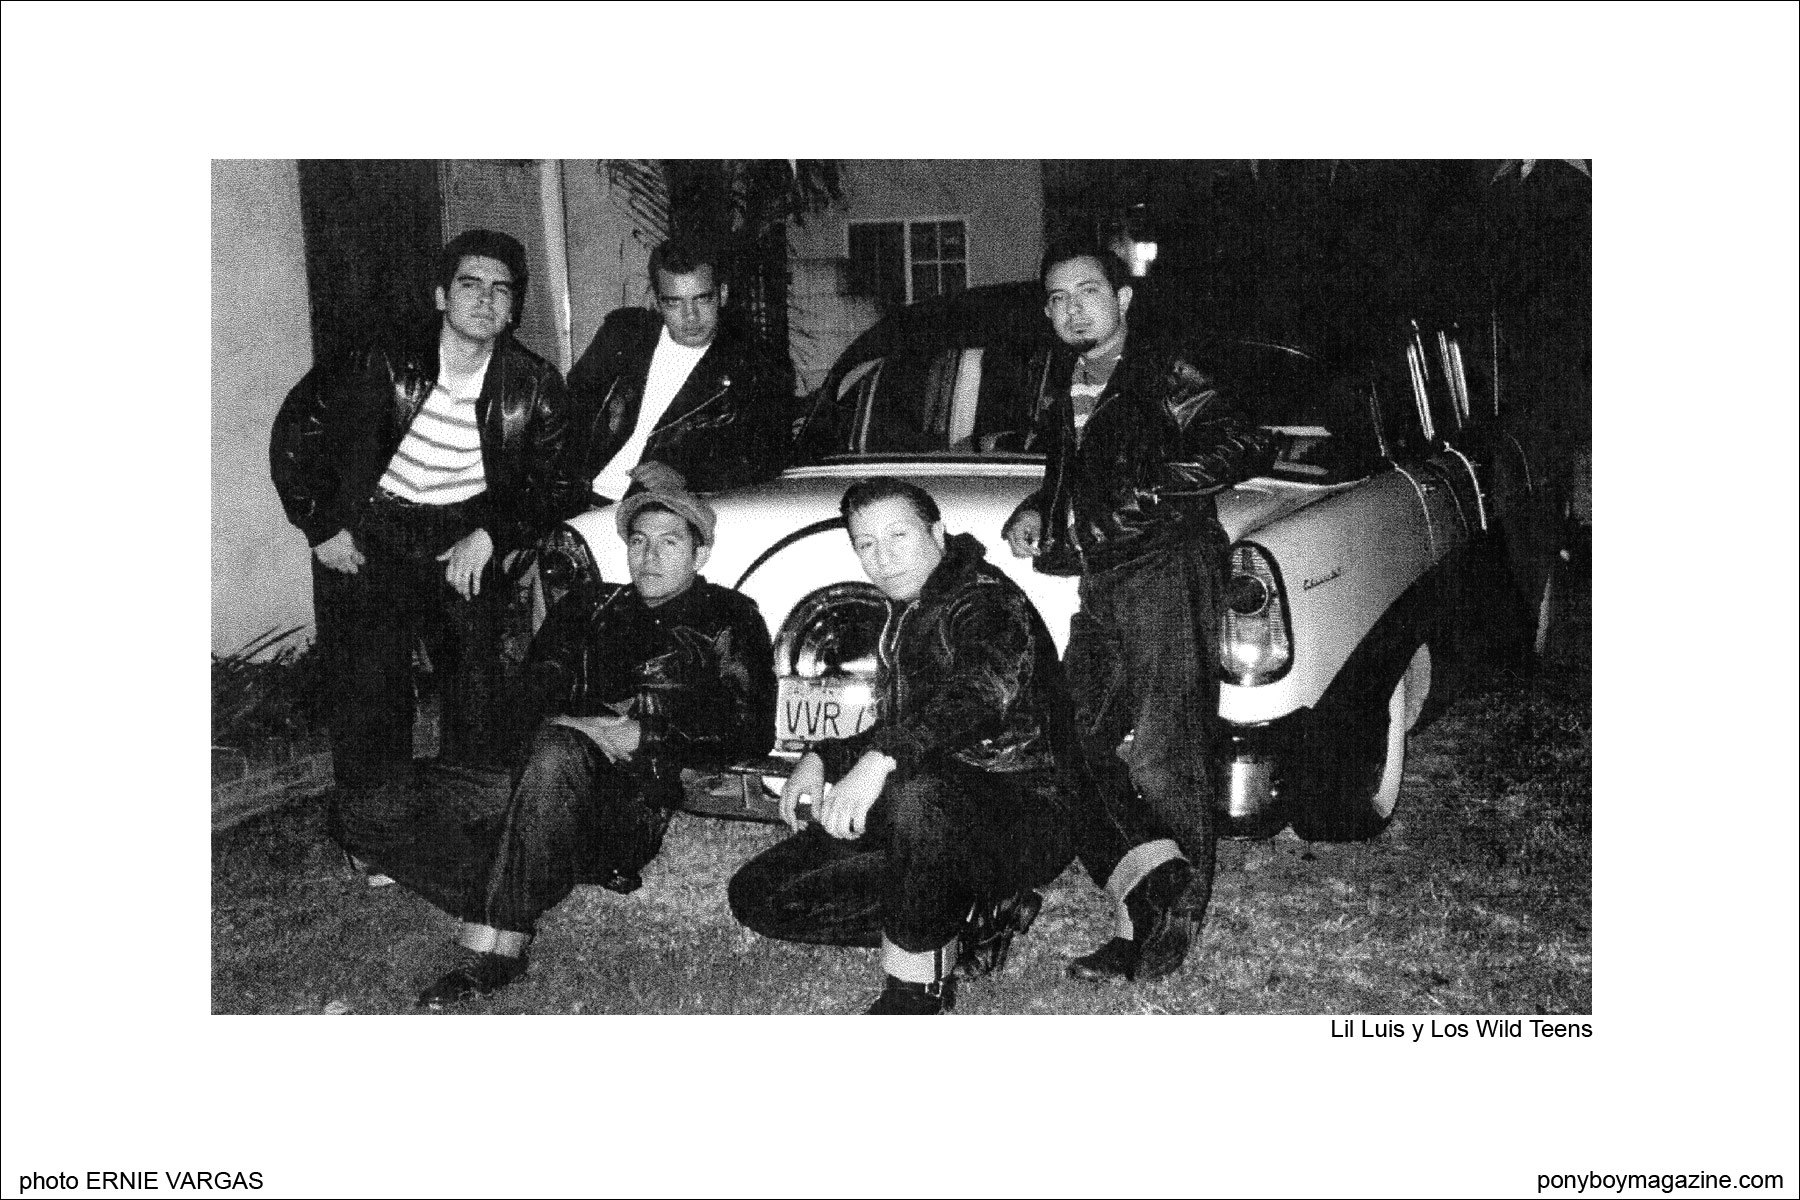 Photo of Wild Records original rockabilly band Lil Luis y Los Wild Teens by Daniel Funaki. Ponyboy Magazine.